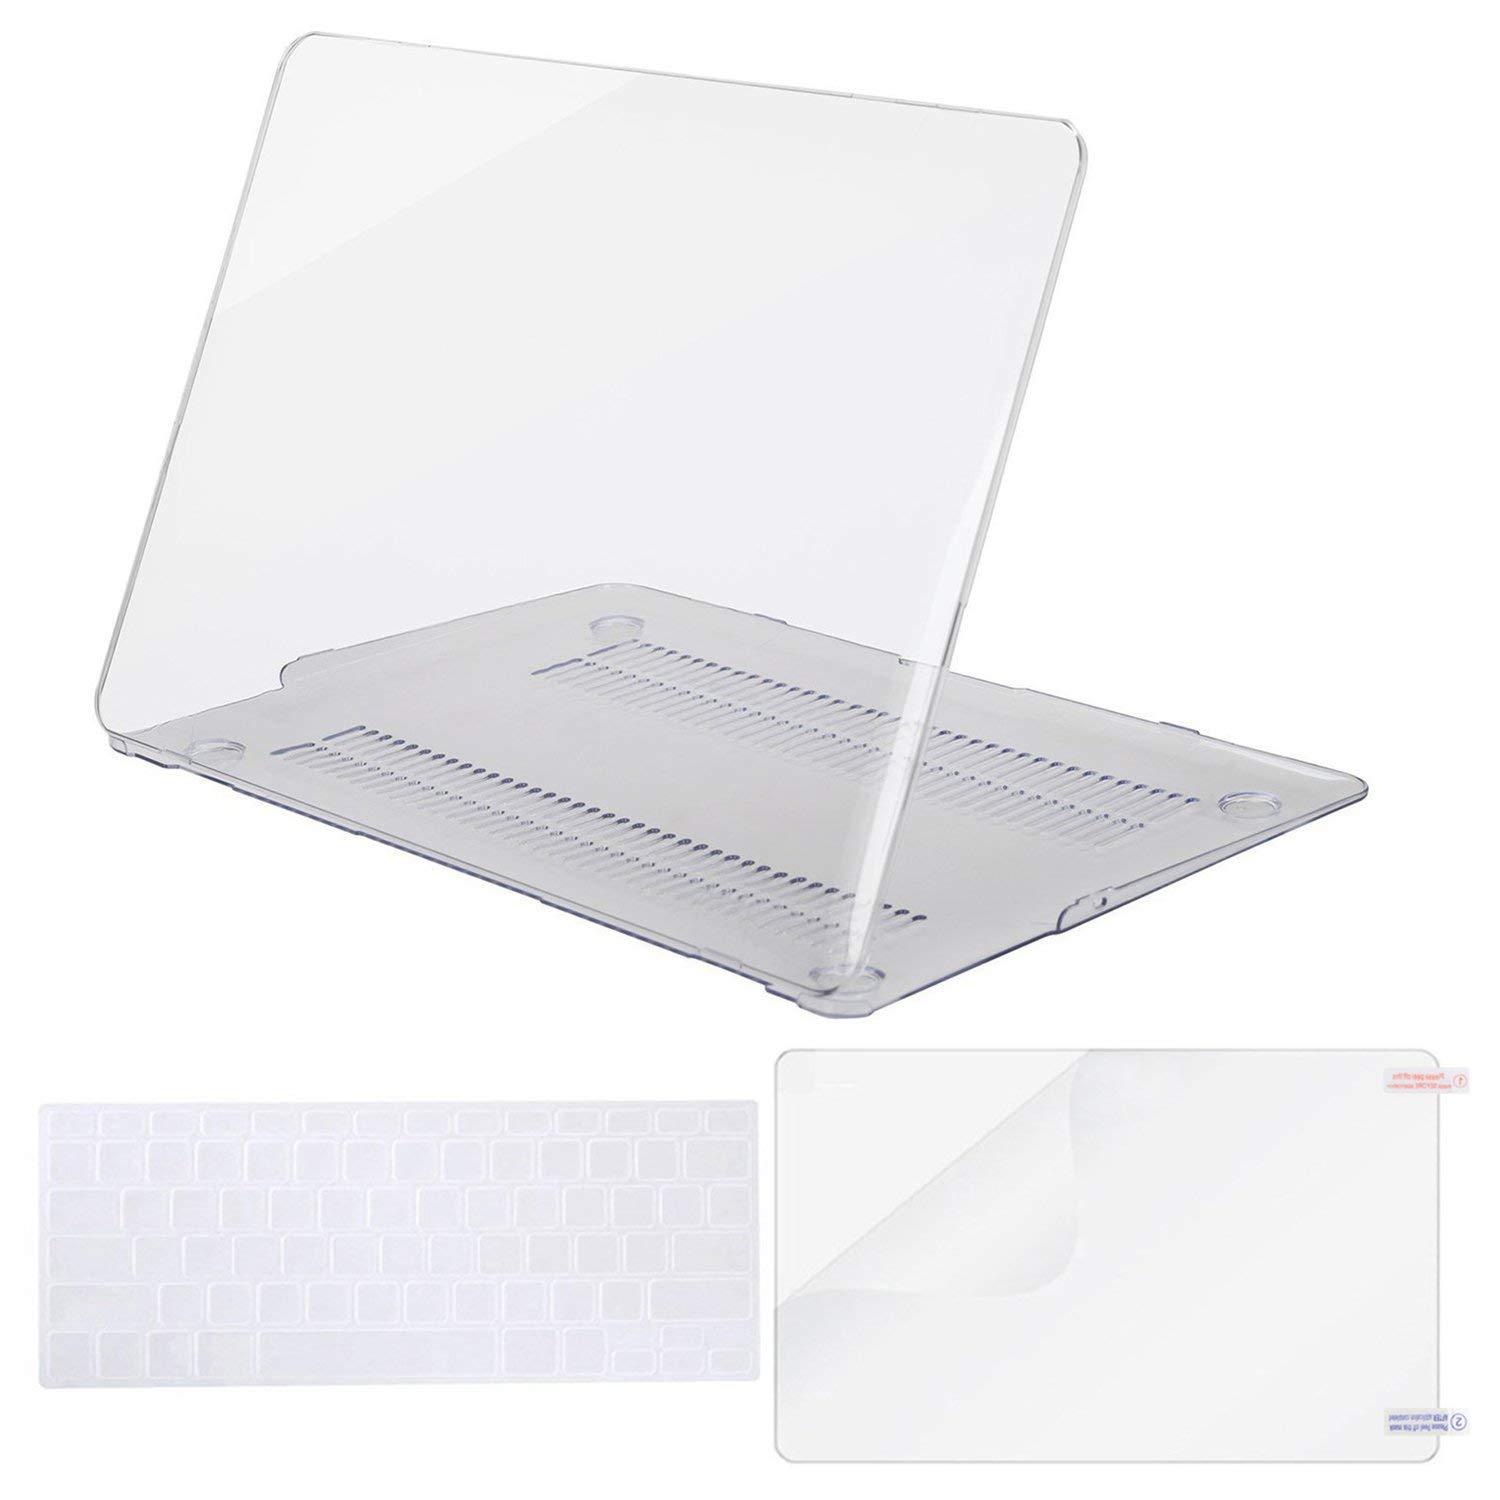 huge selection of 294dd 7891d MacBook Air 13 Case Transparent Frosted Plastic Hard Shell Case Cover  Bundle for Apple MacBook Air 13 Inch A1369/ A1466 Contains Keyboard Cover